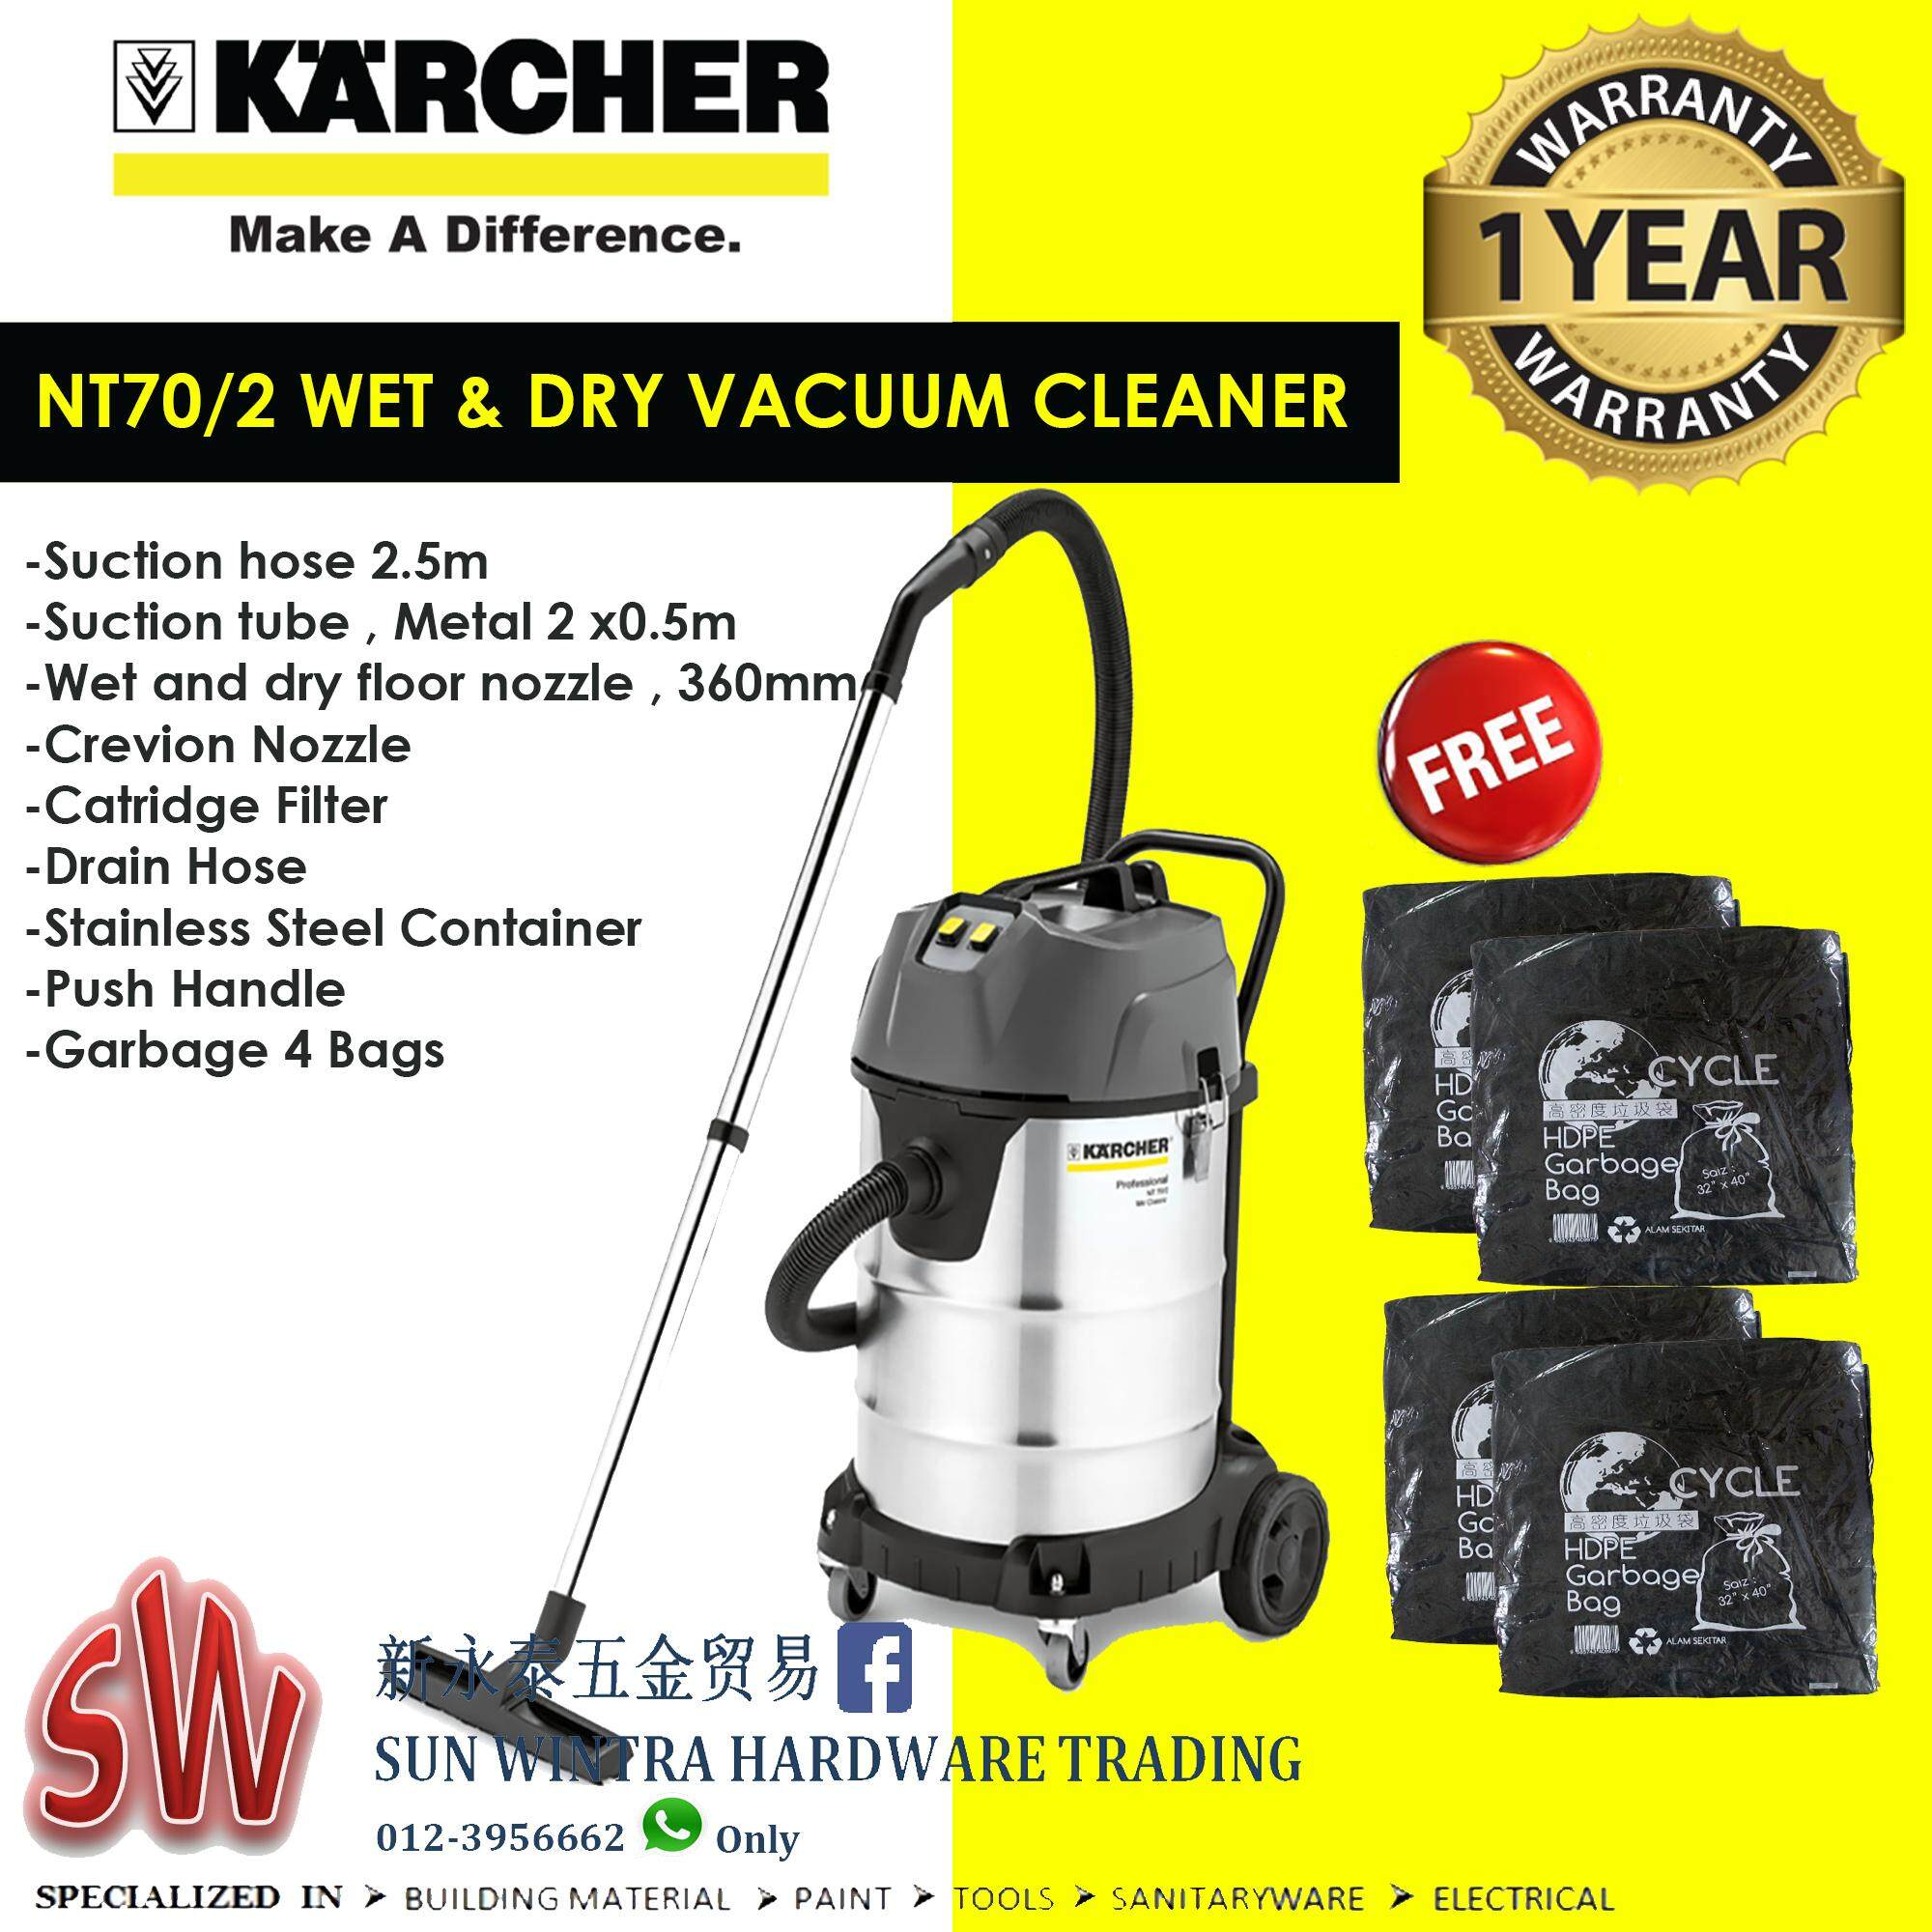 KARCHER NT70/2 PROFESSIONAL WET & DRY VACUUM CLEANERS F.O.C 4X GARBAGE BAG